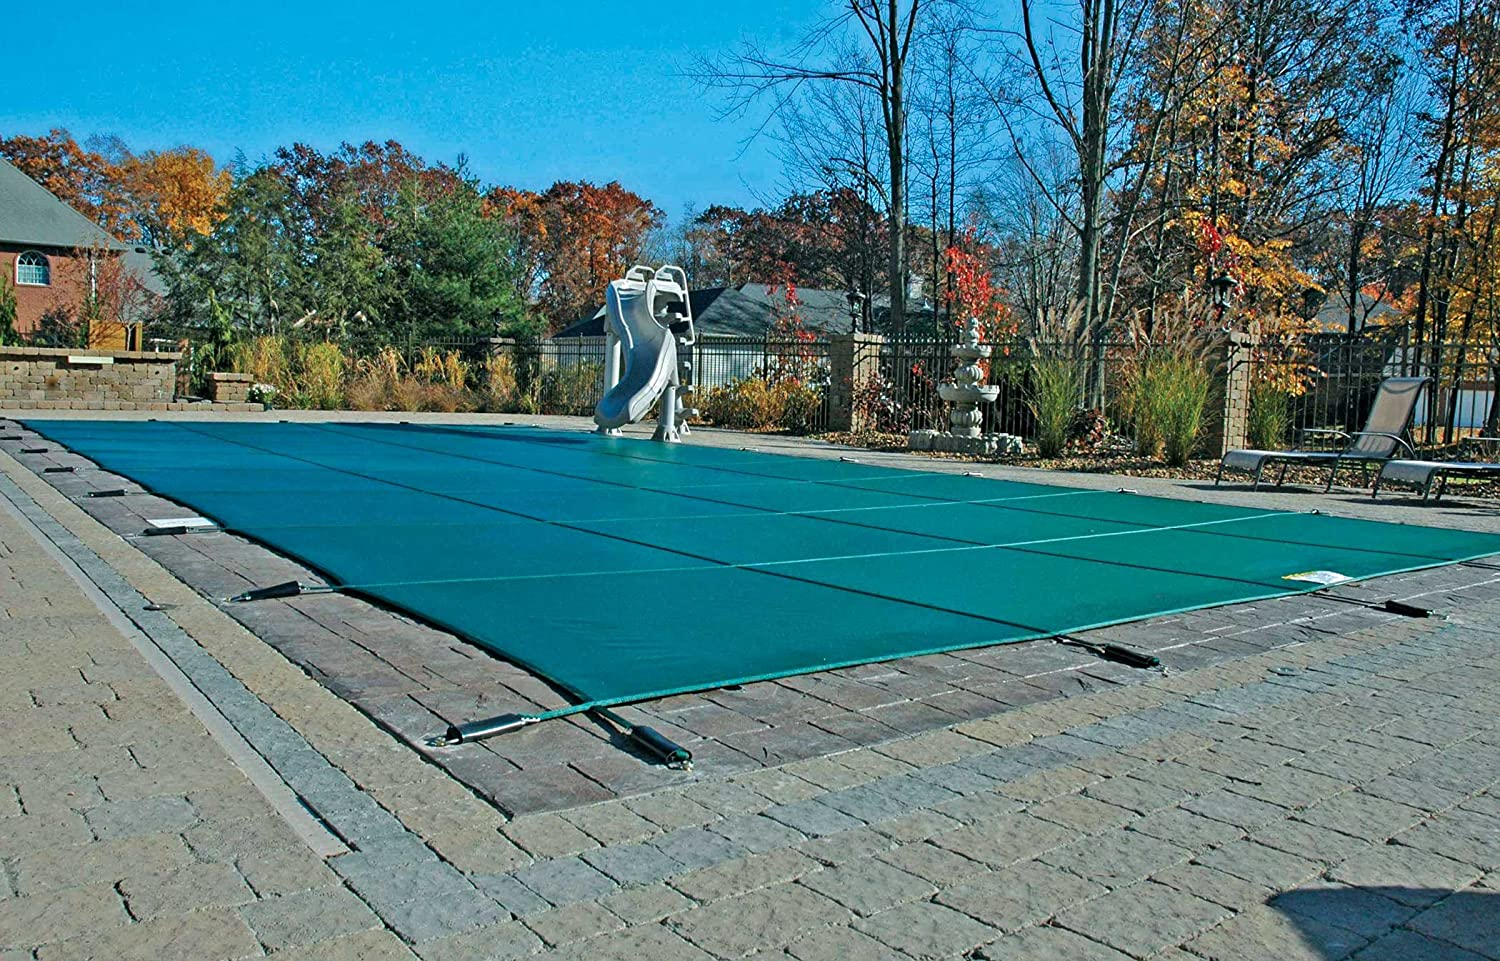 15 x 30 Foot. Rectangle Cover Safety SALENEW very Selling rankings popular Pool Mesh